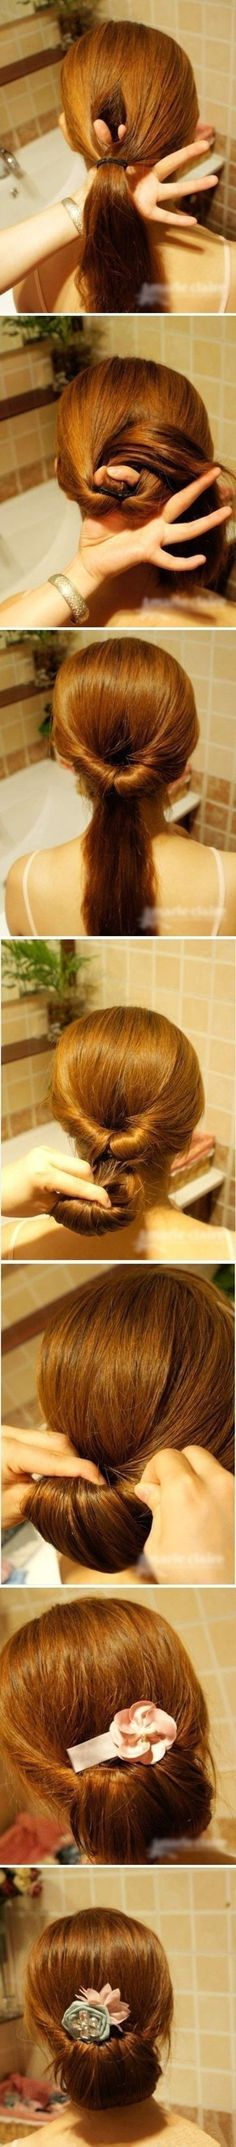 nice 50 Simple Five Minute Hairstyles to snatch the attention: DIY                                                                                                                                                                                 More